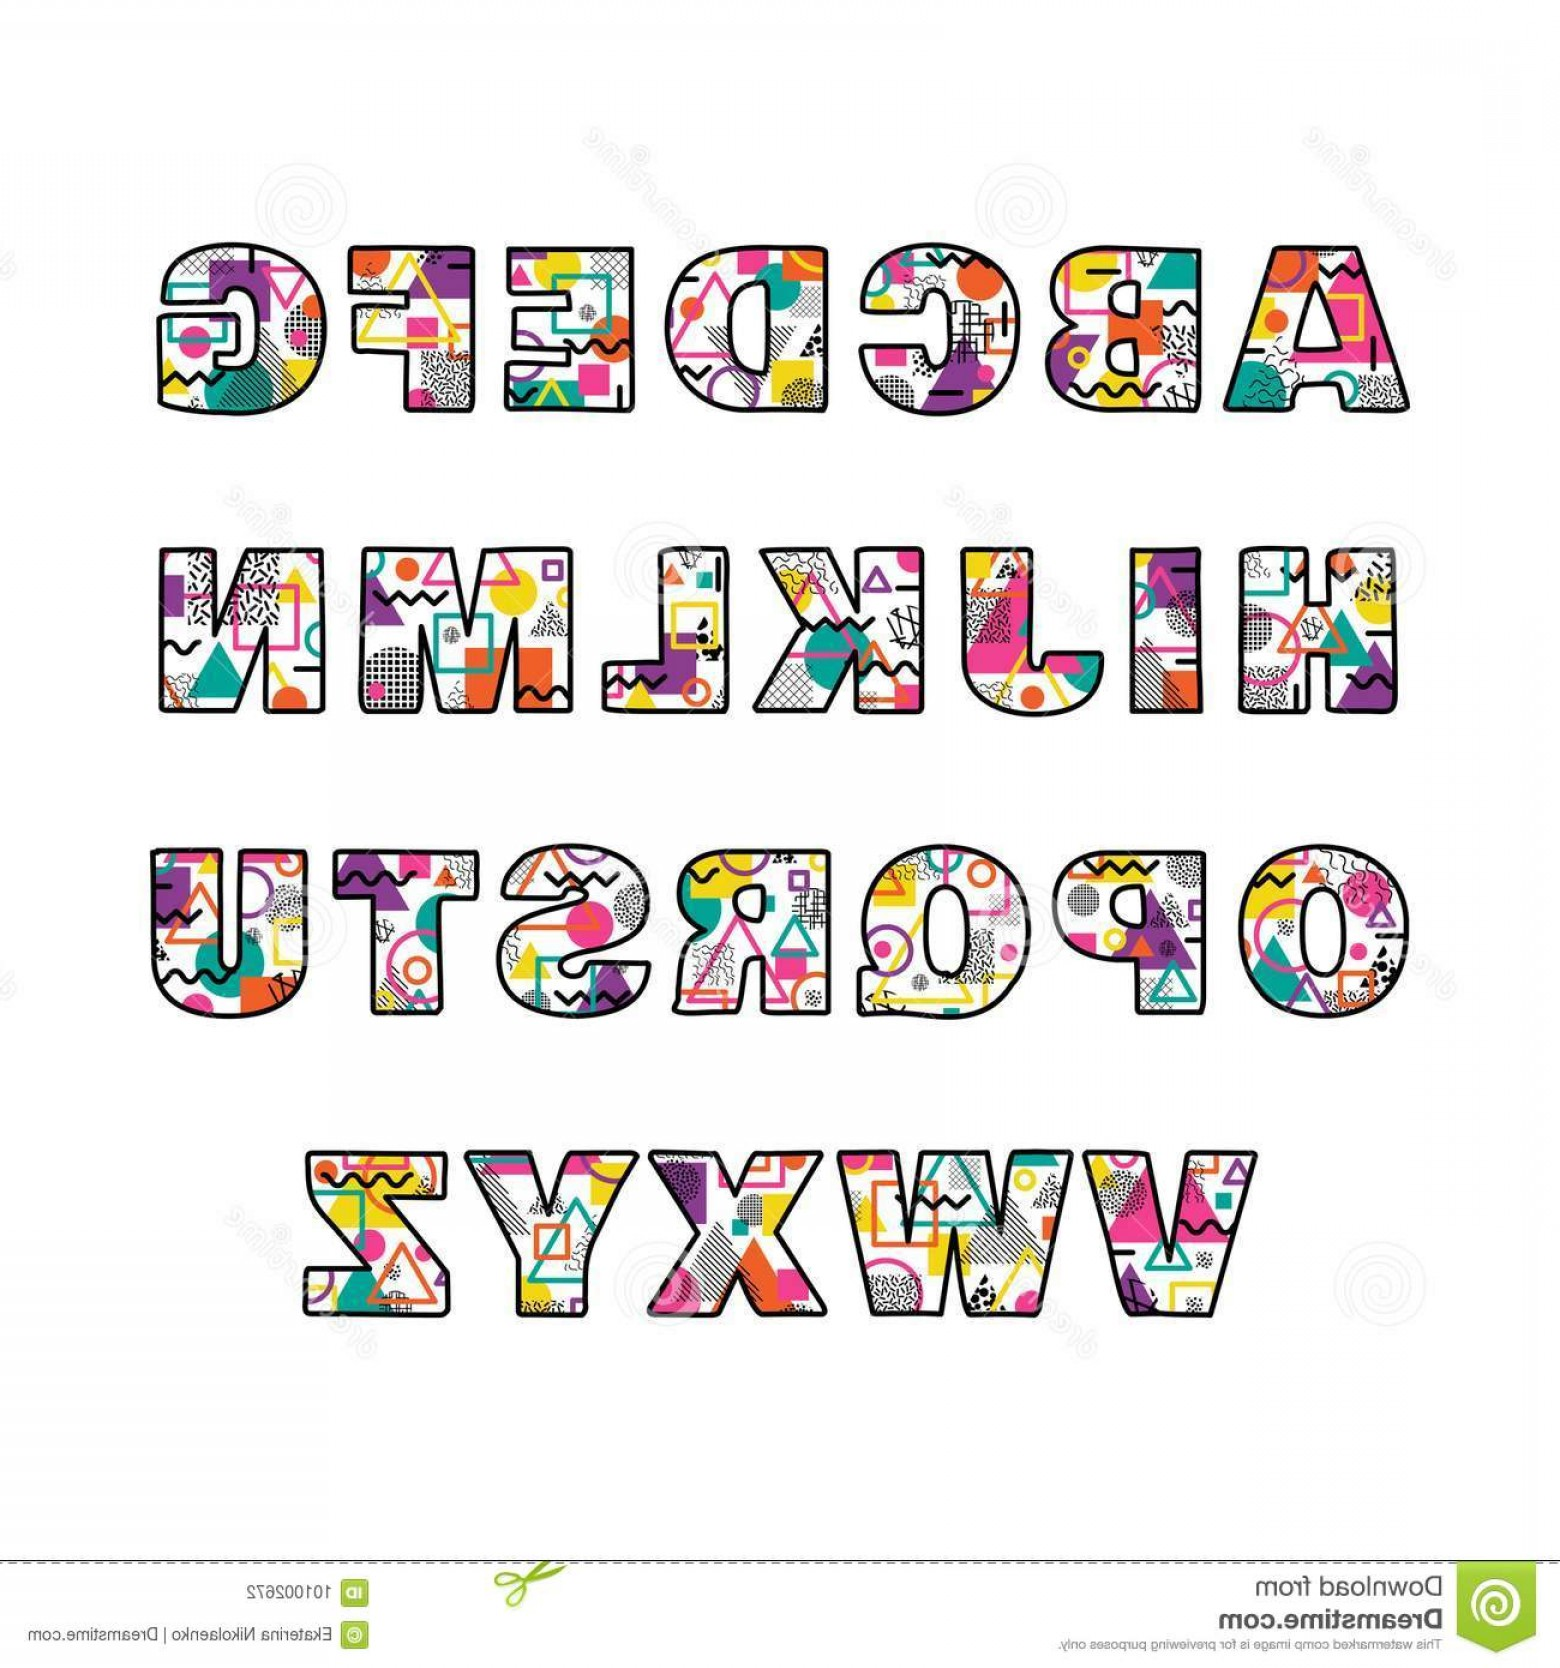 Decorative Font Vector Illustration: Uppercase Alphabet Memphis Style Colorful Decorative Geometric Font Vector Illustration Image